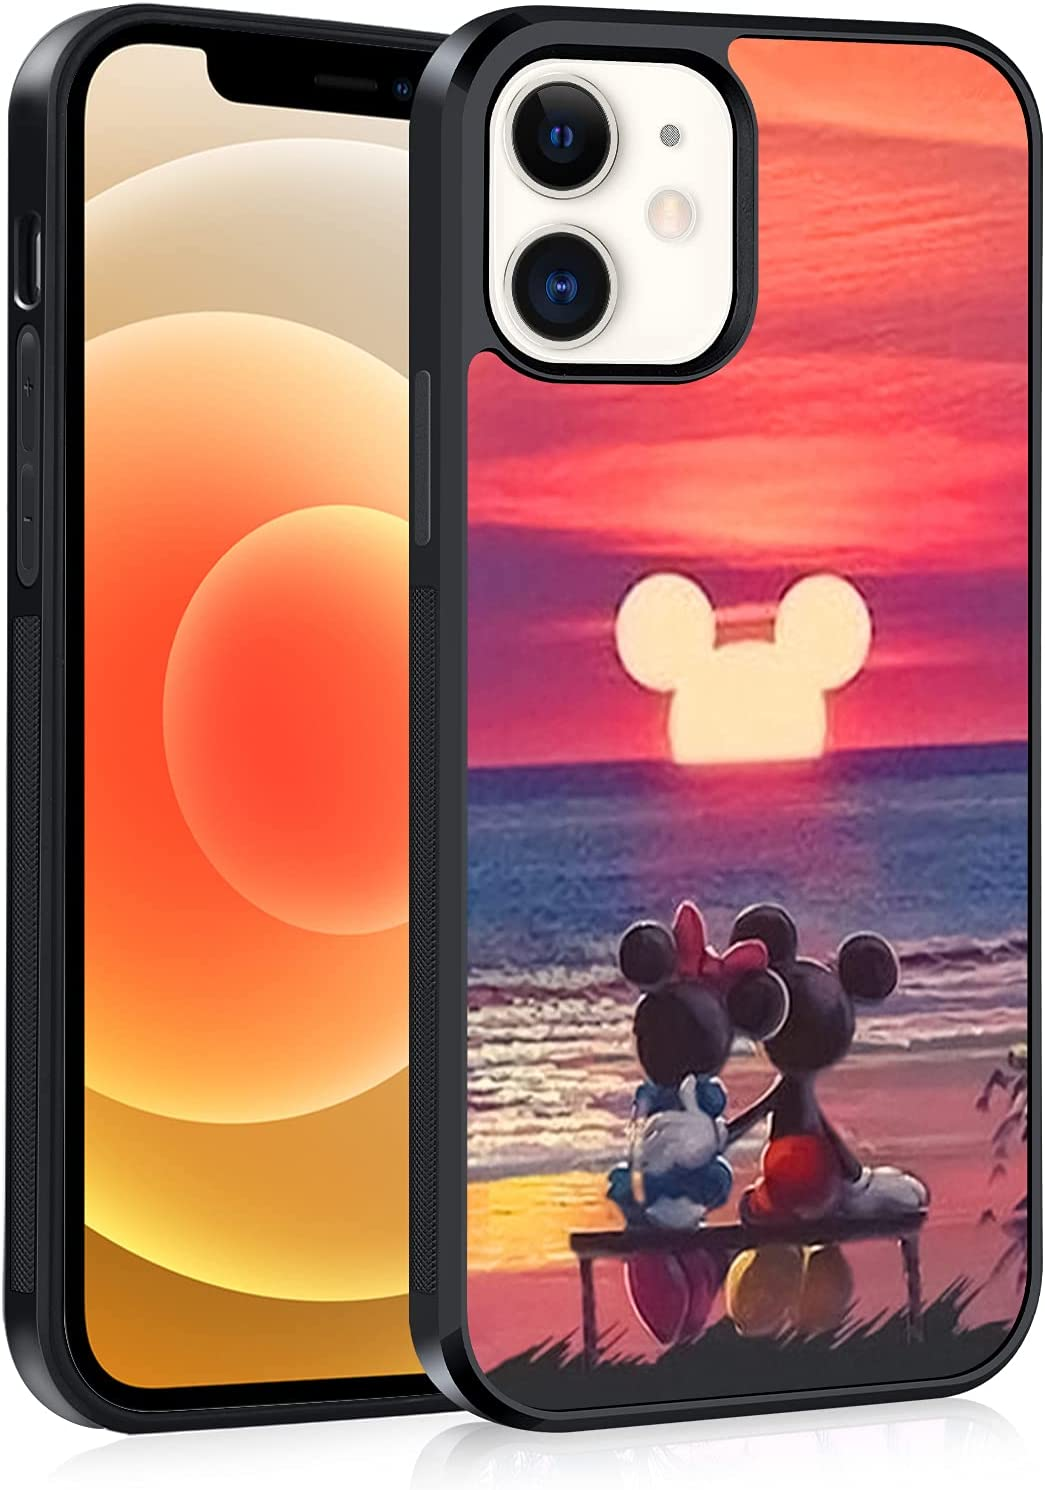 Compatible with iPhone 12 Case, iPhone 12 Pro Case, Cute Pattern Mickey Minnie Mouse Soft TPU Bumper Hard PC Back Shockproof Anti-Skid Tire Black Full Body Protection Cover-6.1 inch